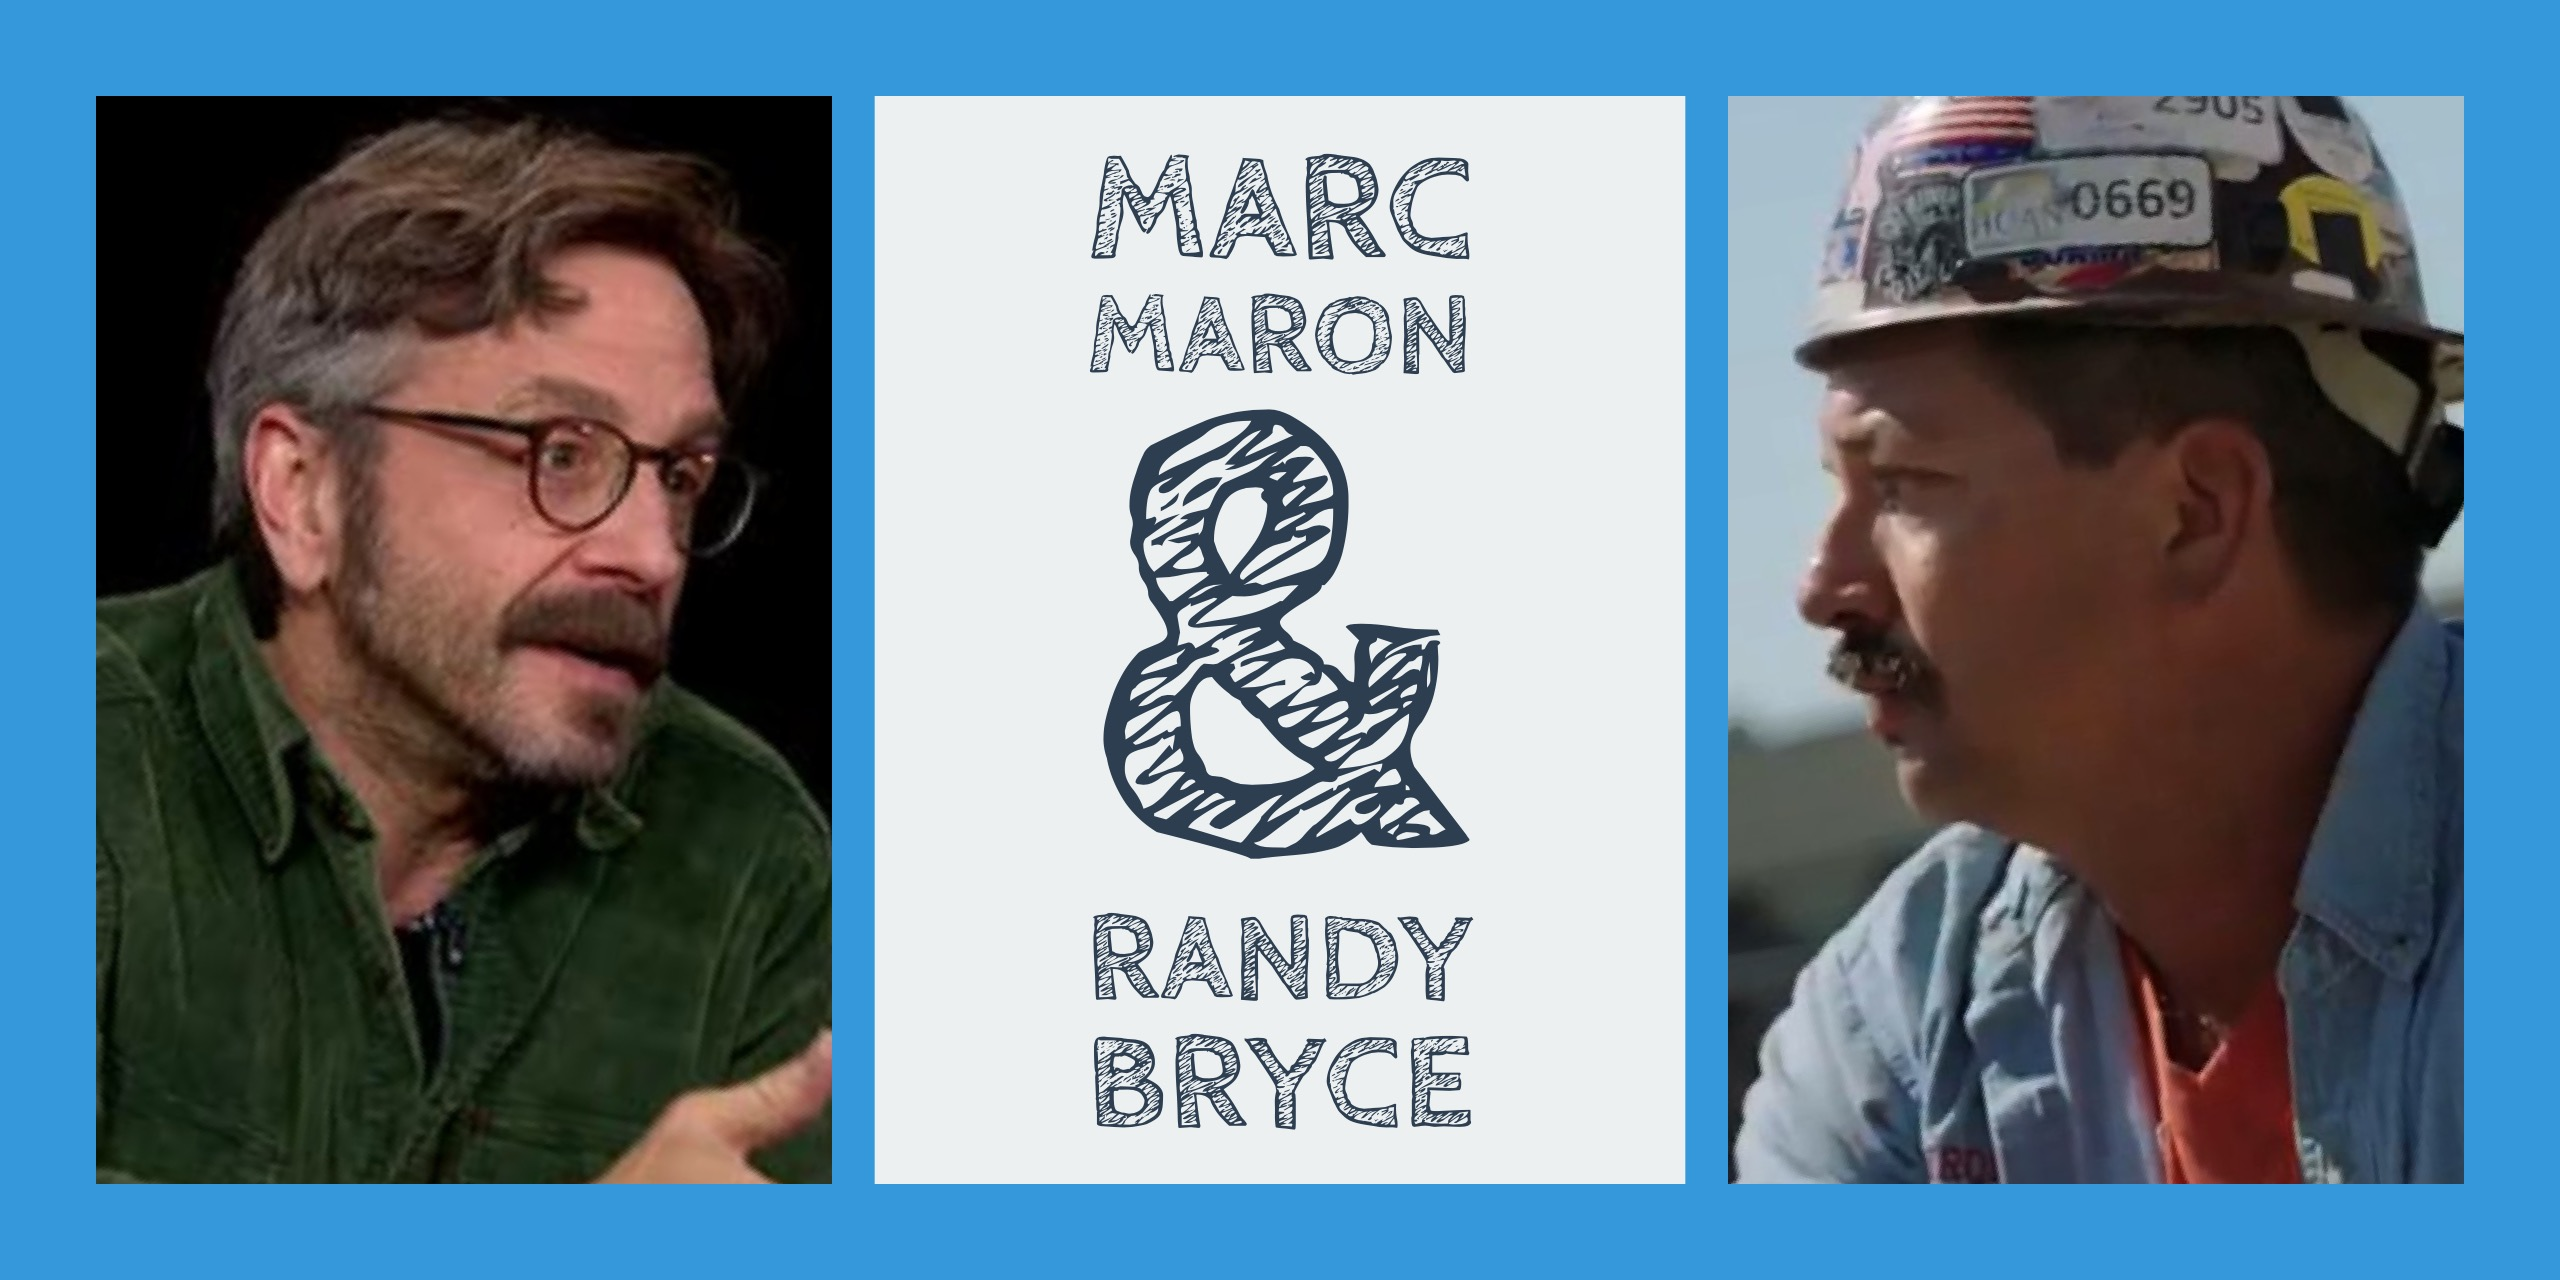 Marc Maron and Randy Bryce